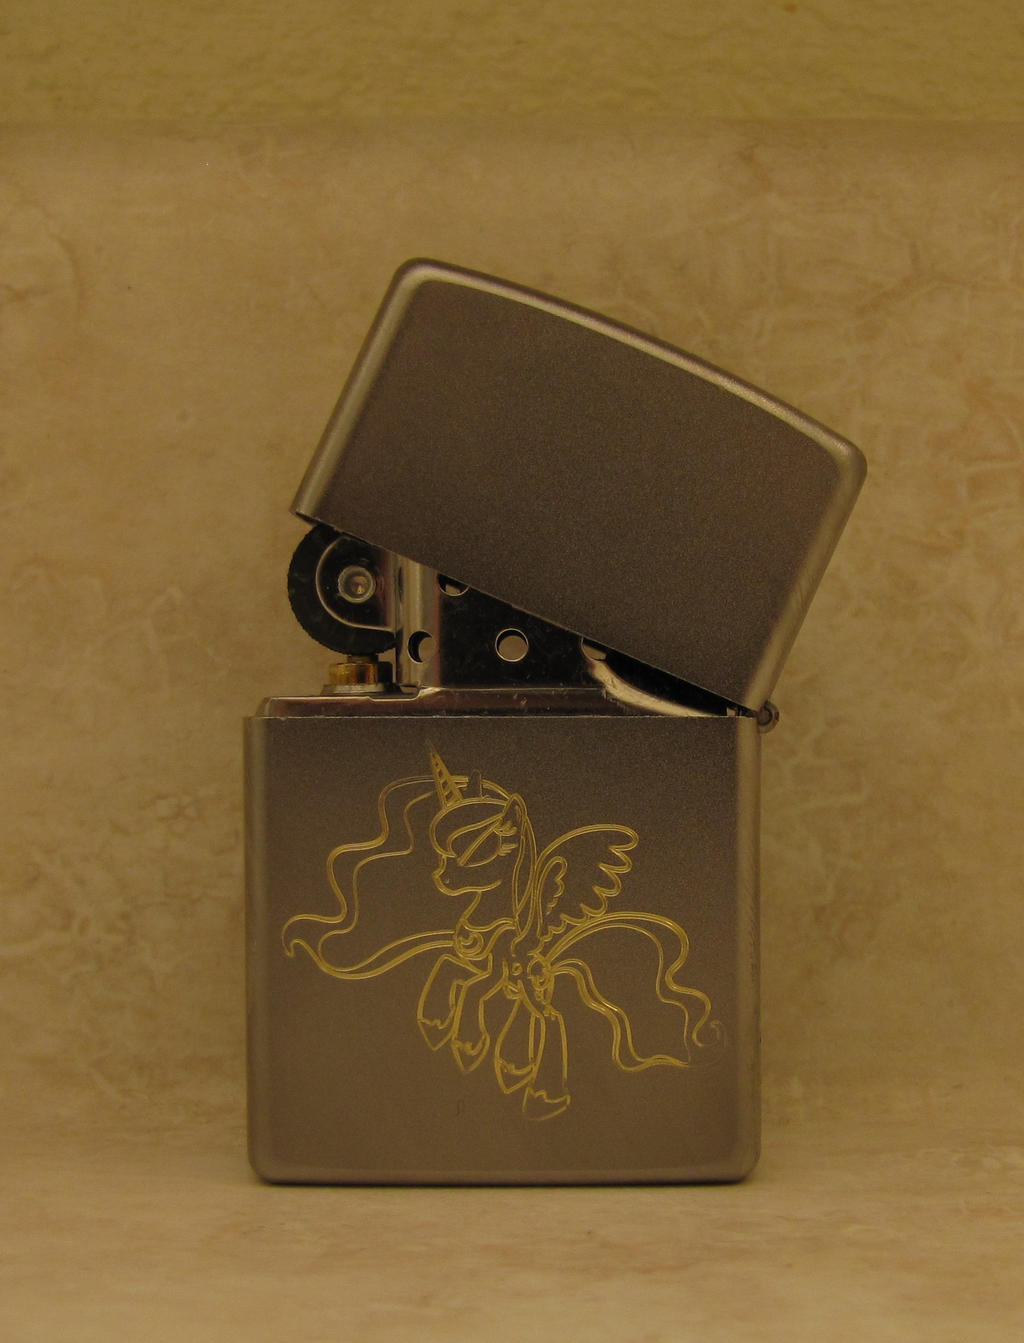 Luna on a zippo lighter by tiwake